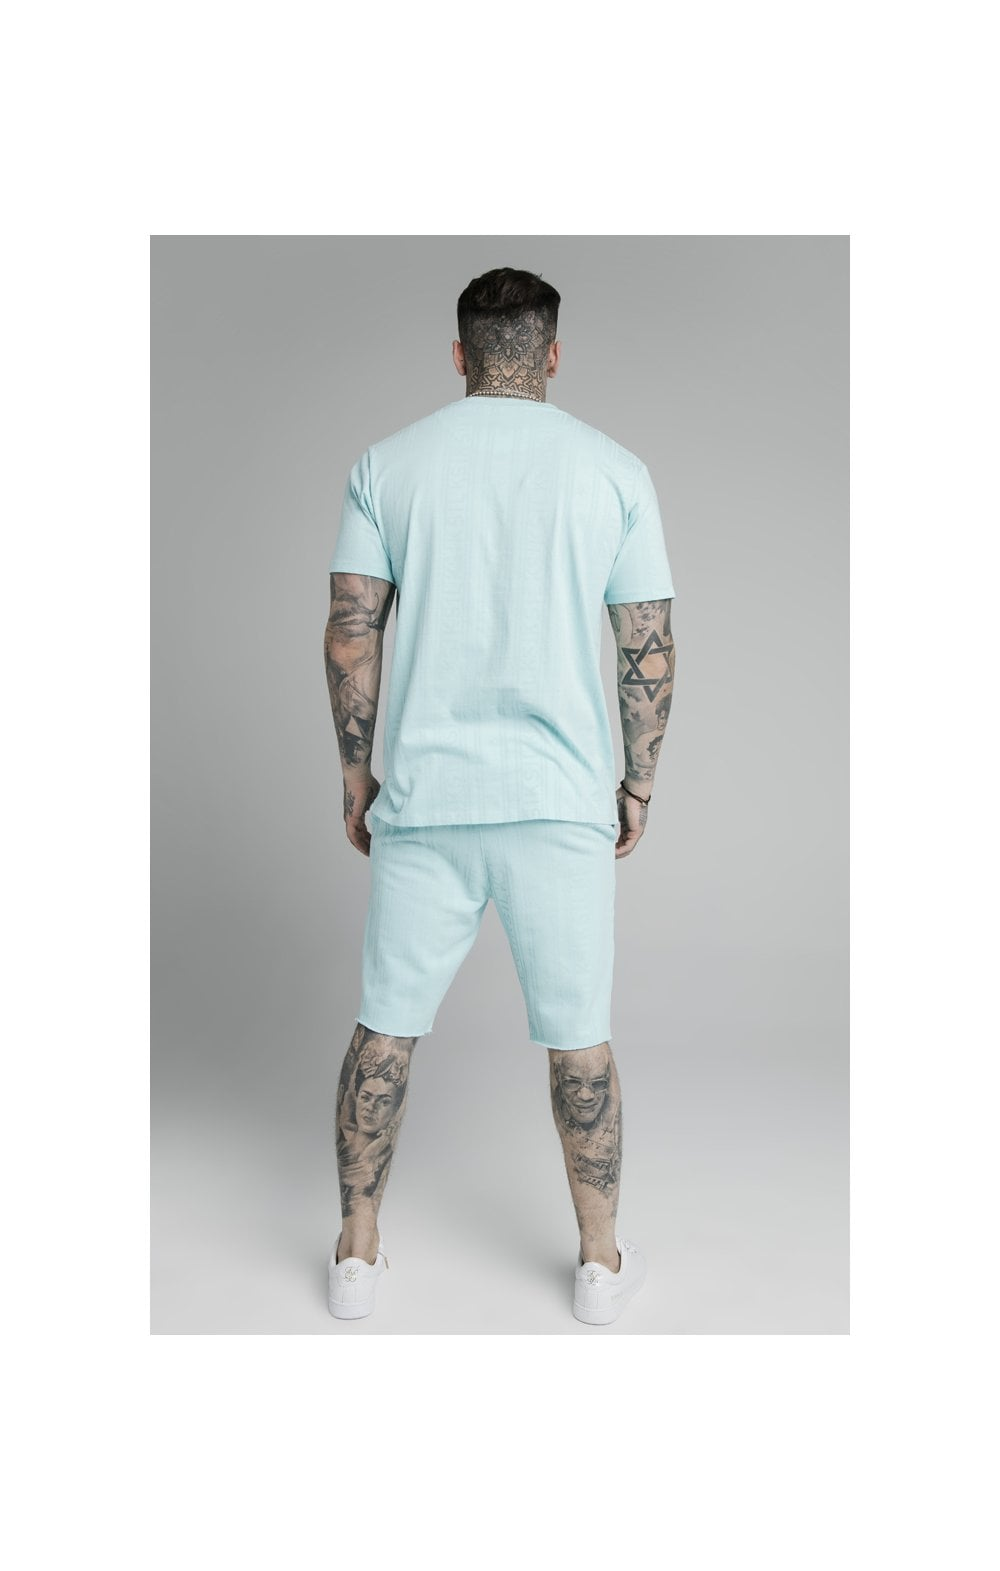 Load image into Gallery viewer, SikSilk Pastel Gym Shorts - Blue (4)